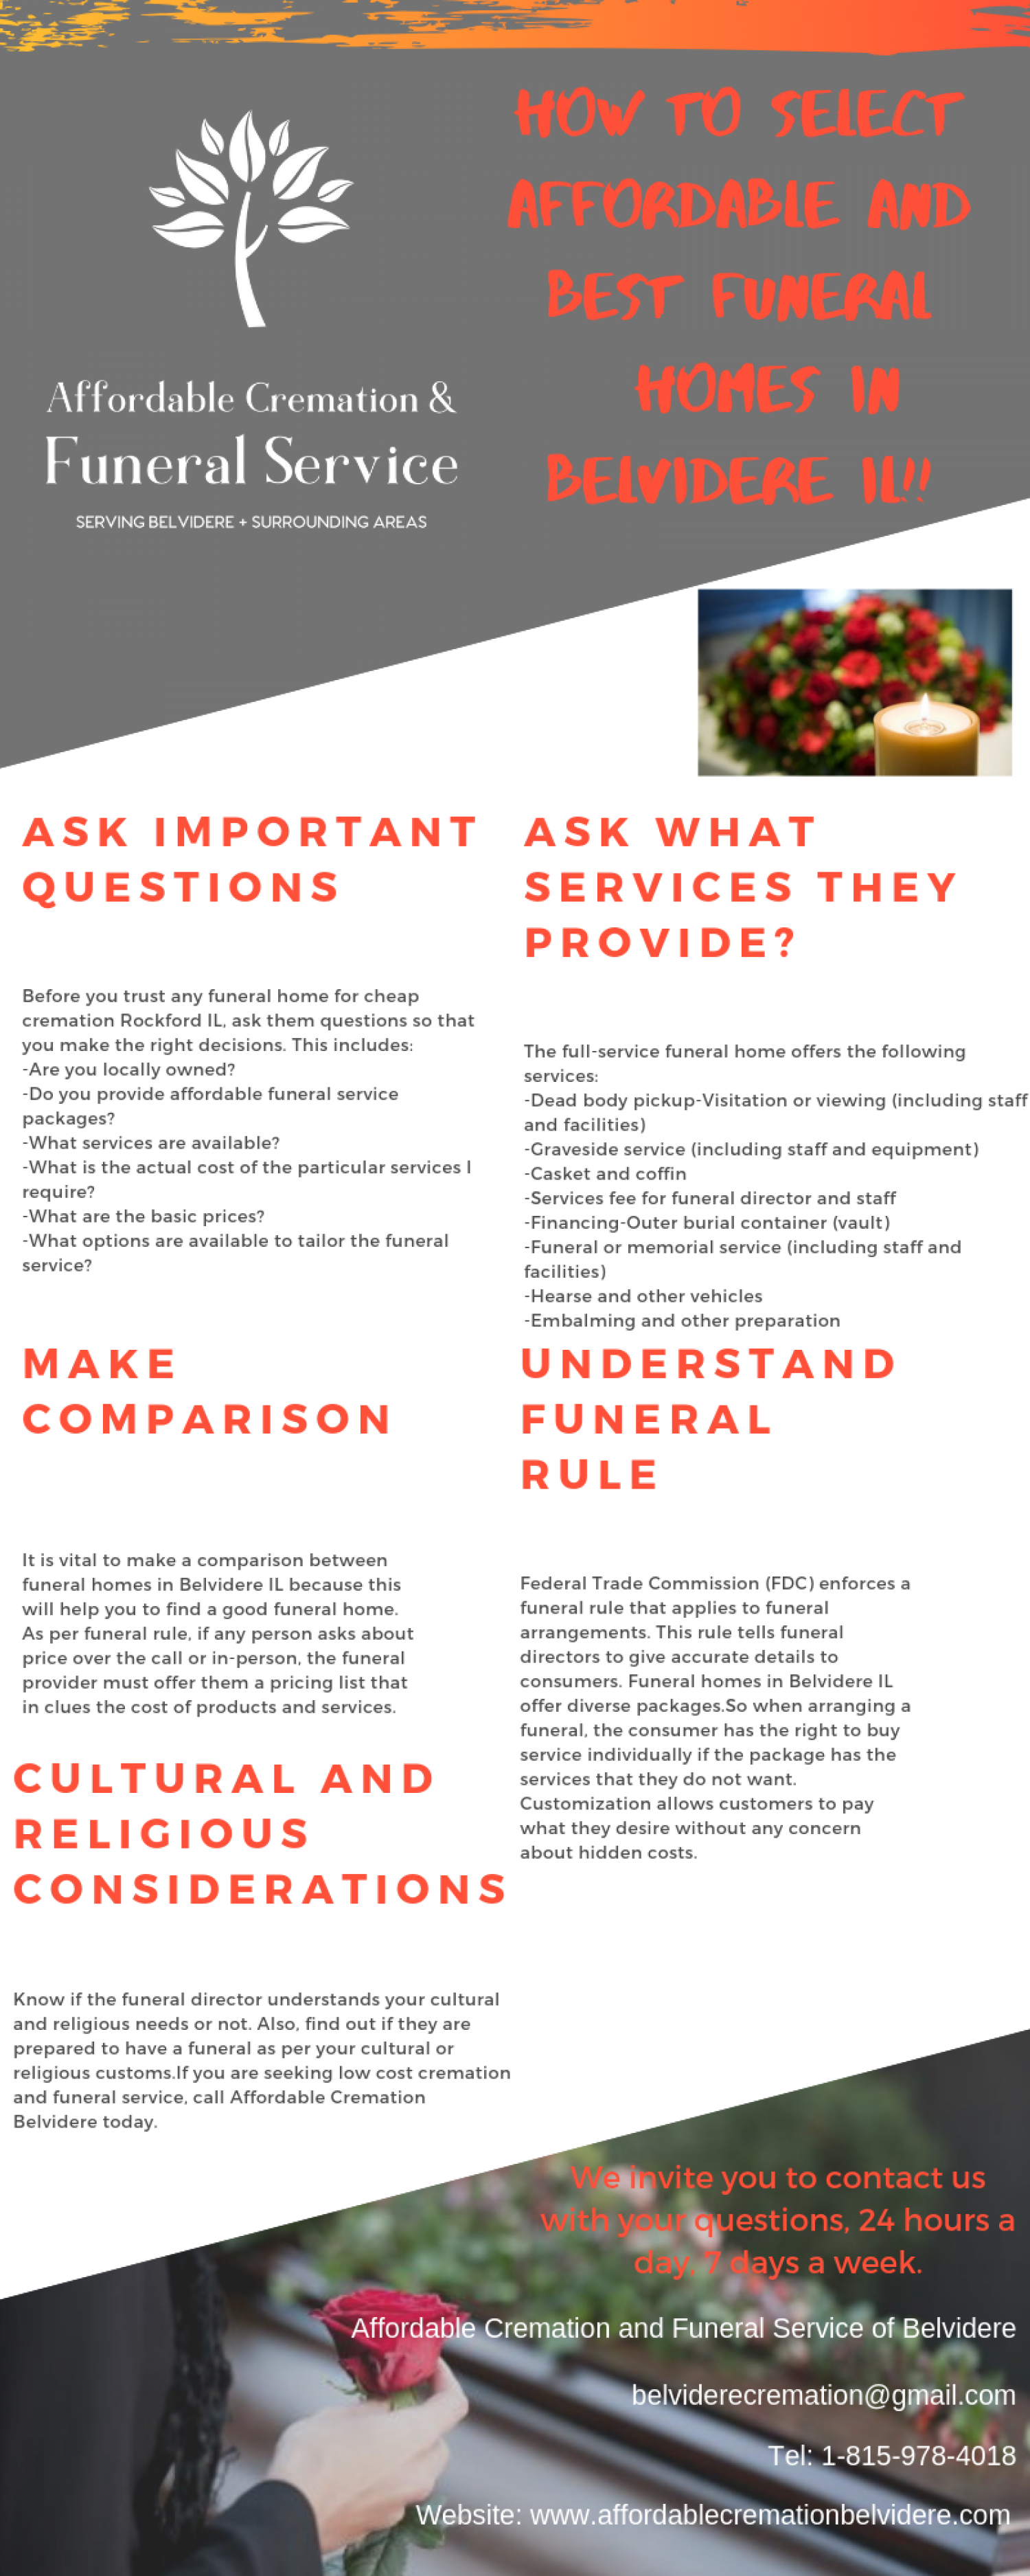 How to select Affordable and best Funeral Homes in Belvidere IL !! Infographic